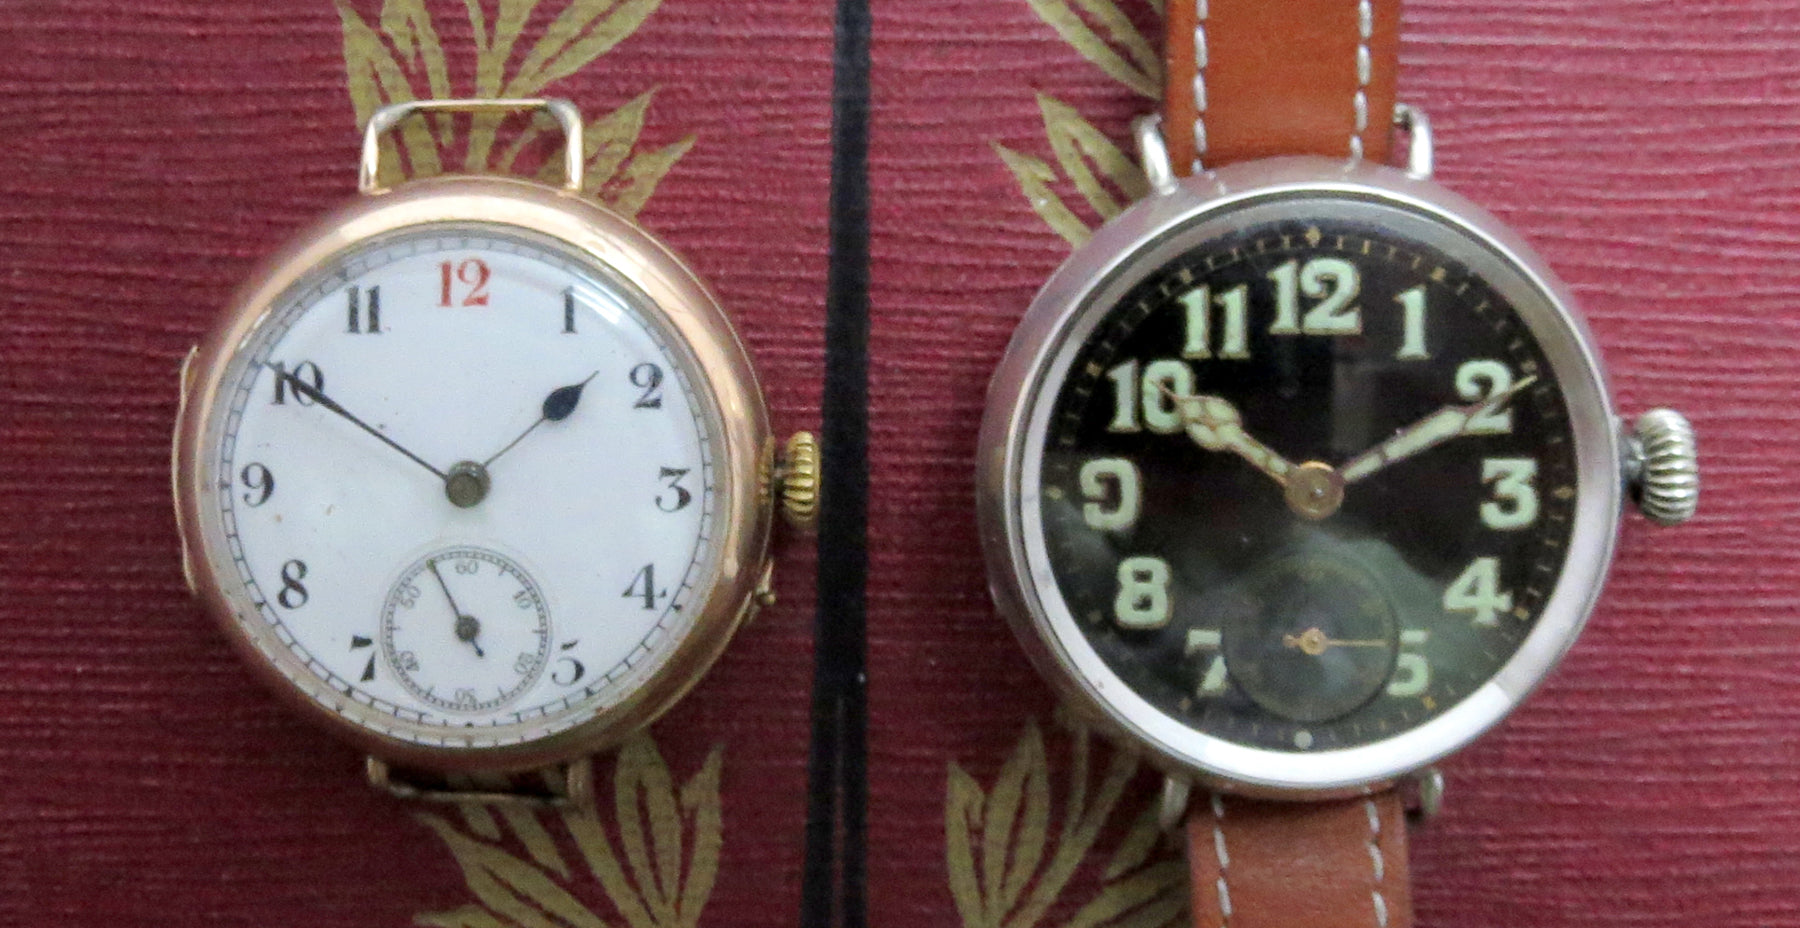 Comparison shot between an early 1914 gold trench watch, almost certainly belonging to an officer, and a later 1918 model.